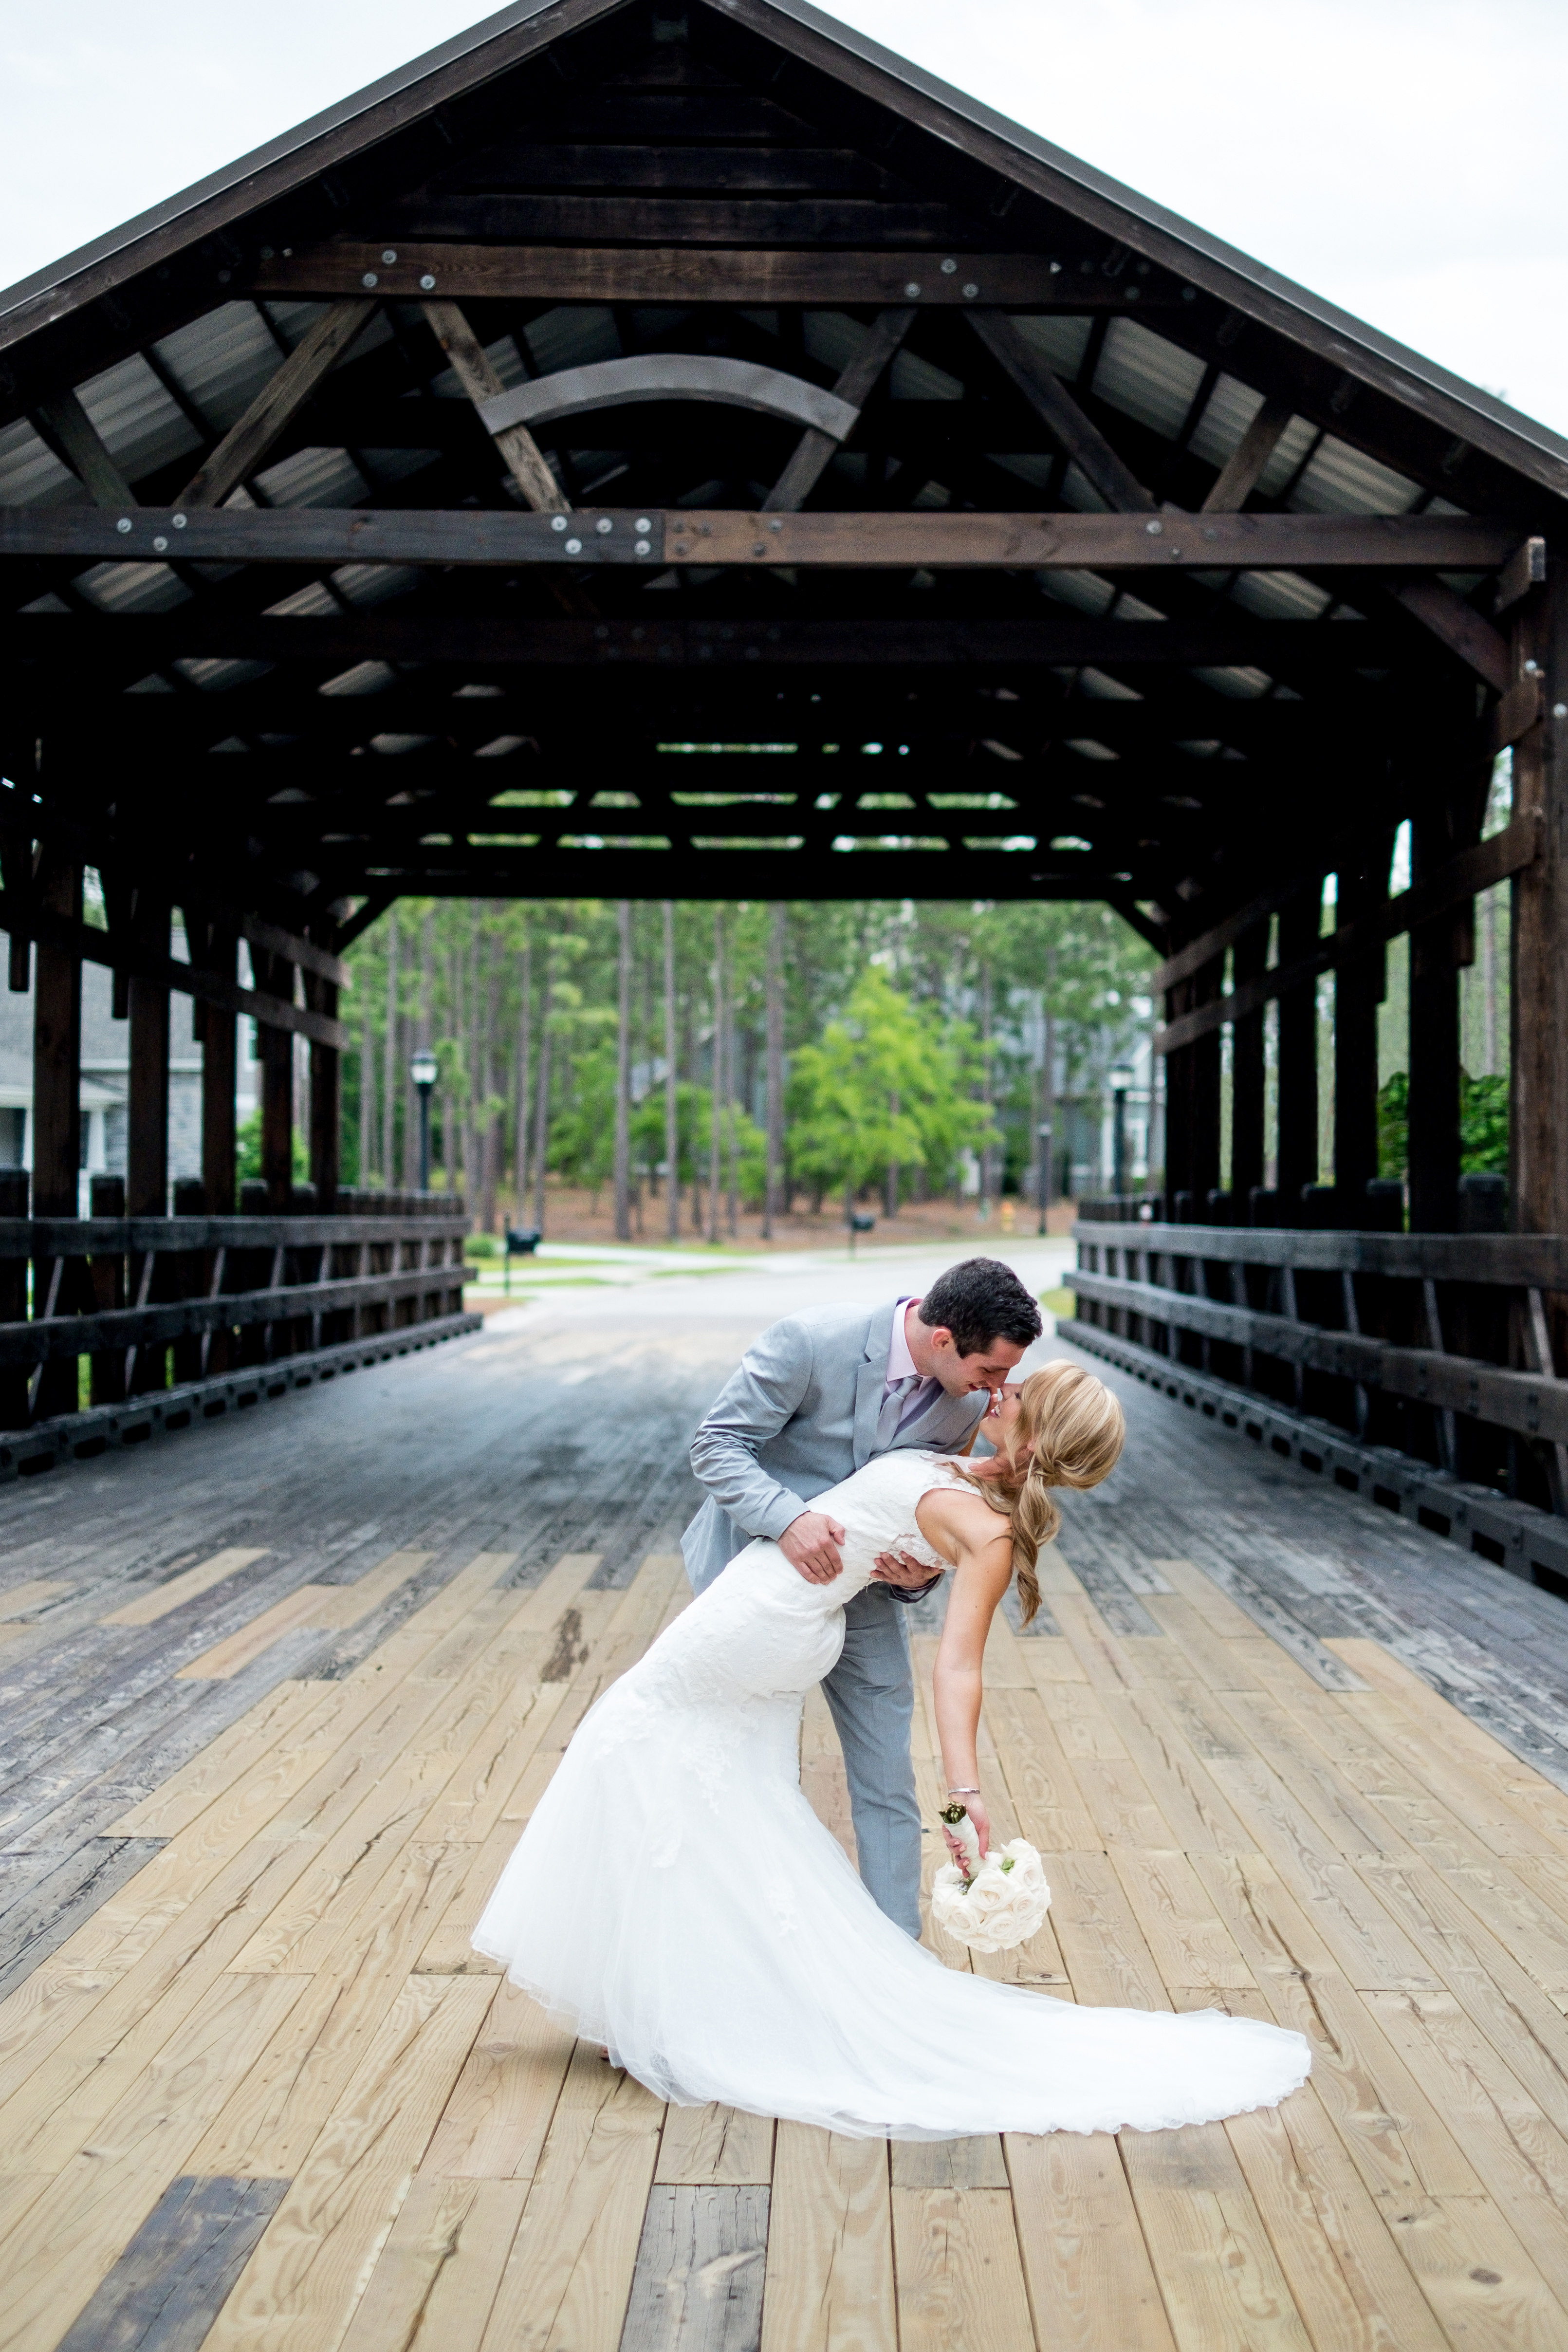 A groom dipping his bride, on a wooden bridge. Photo taken by Pait Photography, at a wedding at St. James Plantation, in St. James, NC.